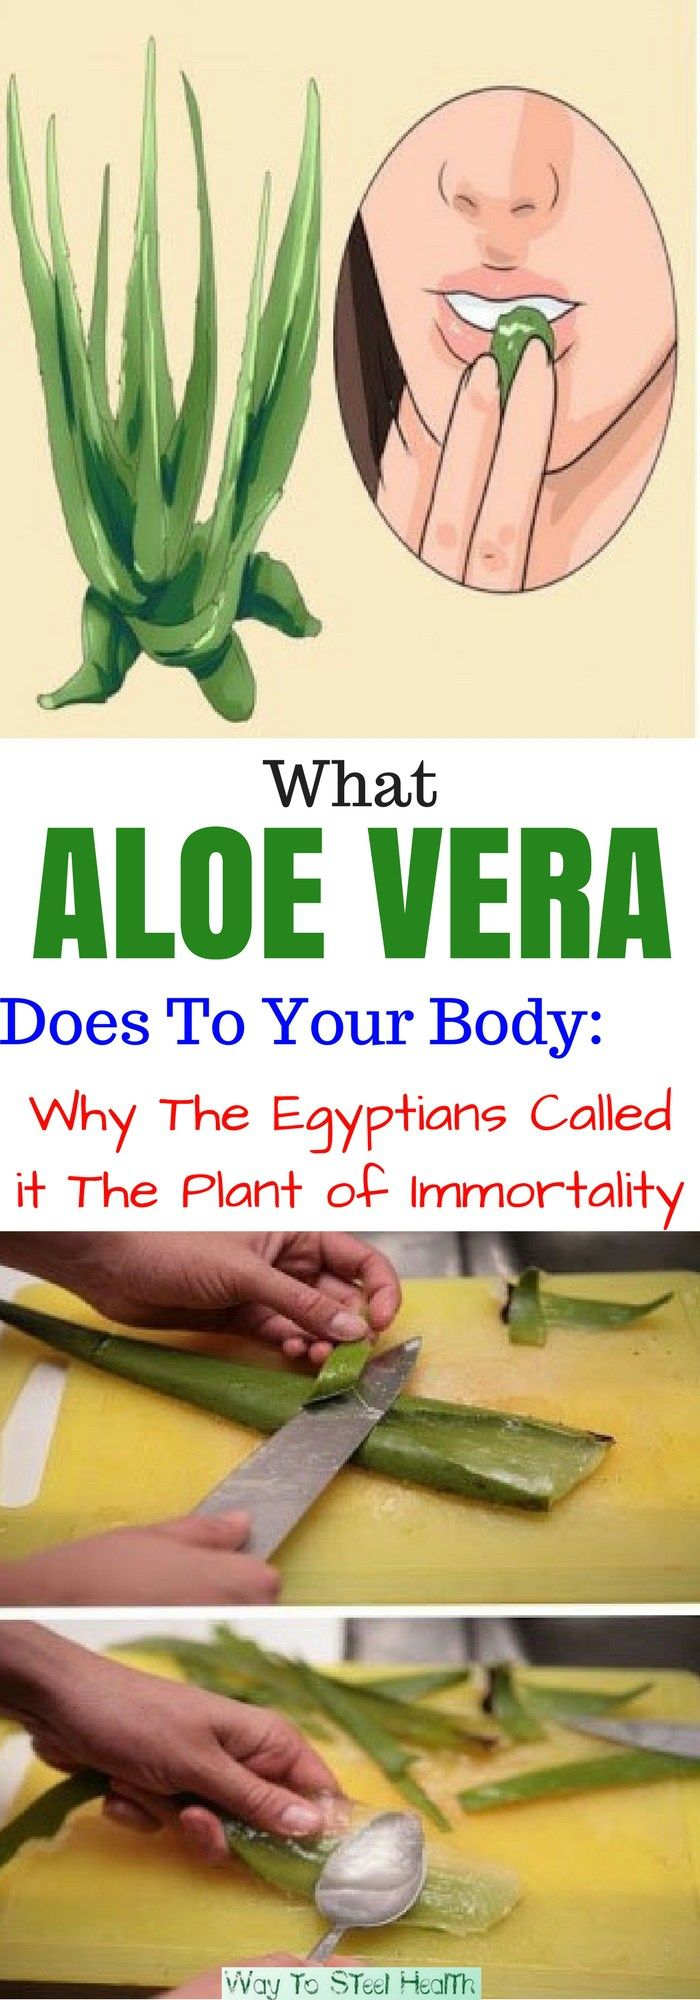 Aloe Vera, also known as Aloe Barbadensis, has become all the rage over the past few years.  But, did you know that keeping this decorative interior plant in your home is equally beneficial, too? As a matter of fact, Aloe Vera has been long used for medicinal purposes and had a special place in Greek,... Continue Reading →